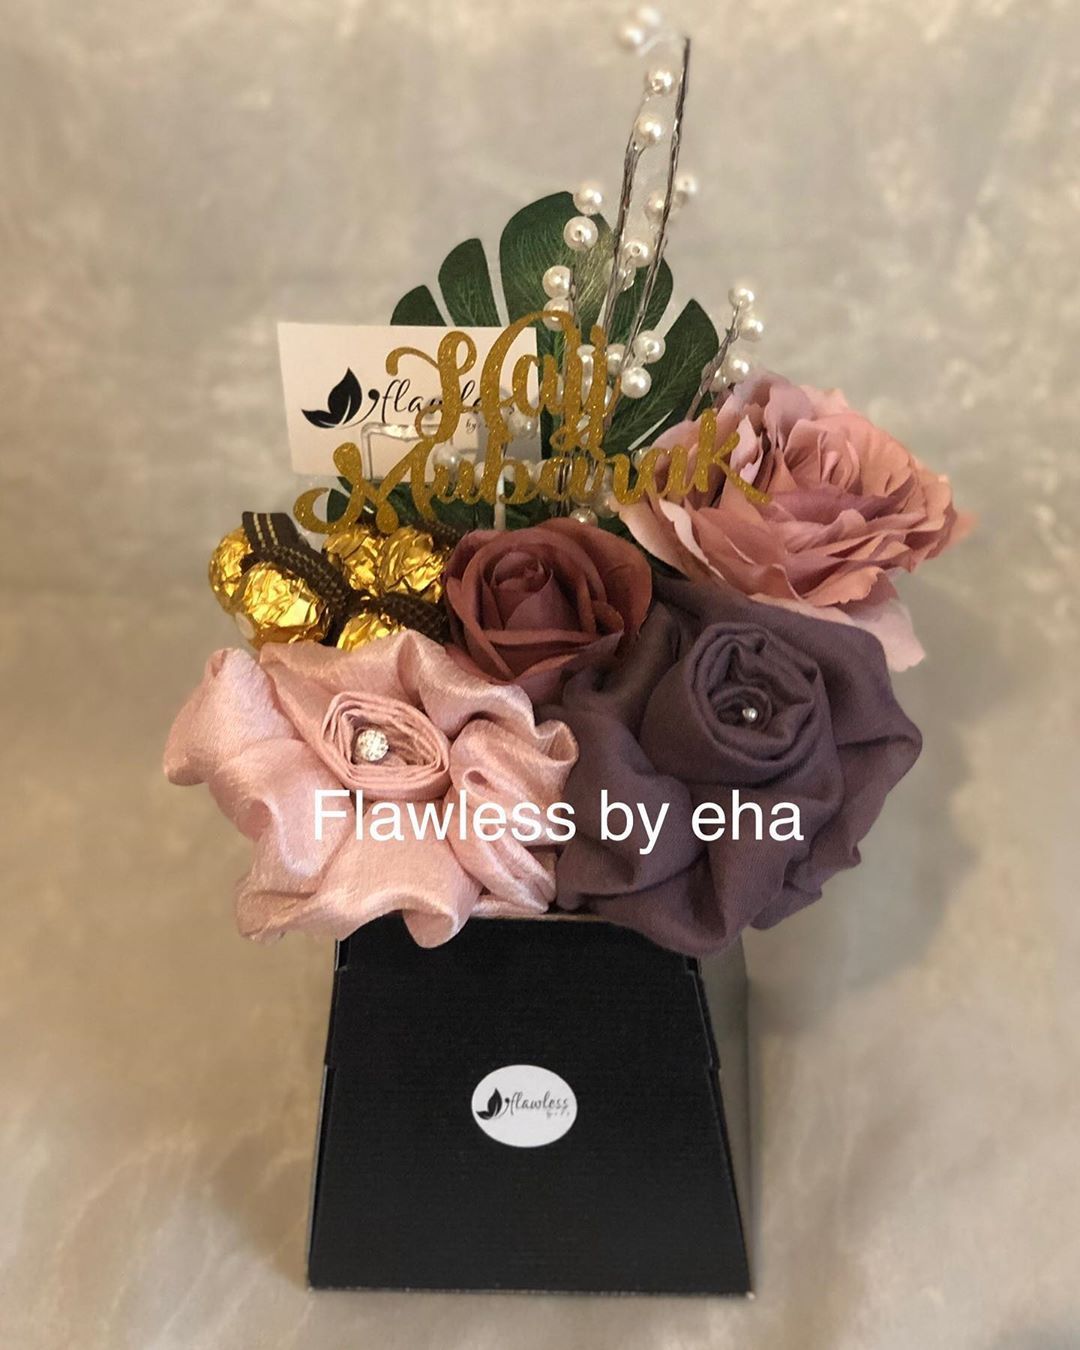 A Elegant 2 Hijab Bouquet Made Up Of A Mauve Viscose And A Soft Pink Silk Hijab Adorned With Flowers Accessories And Ferrero Rocher Chocolates Bunga Buket Ide